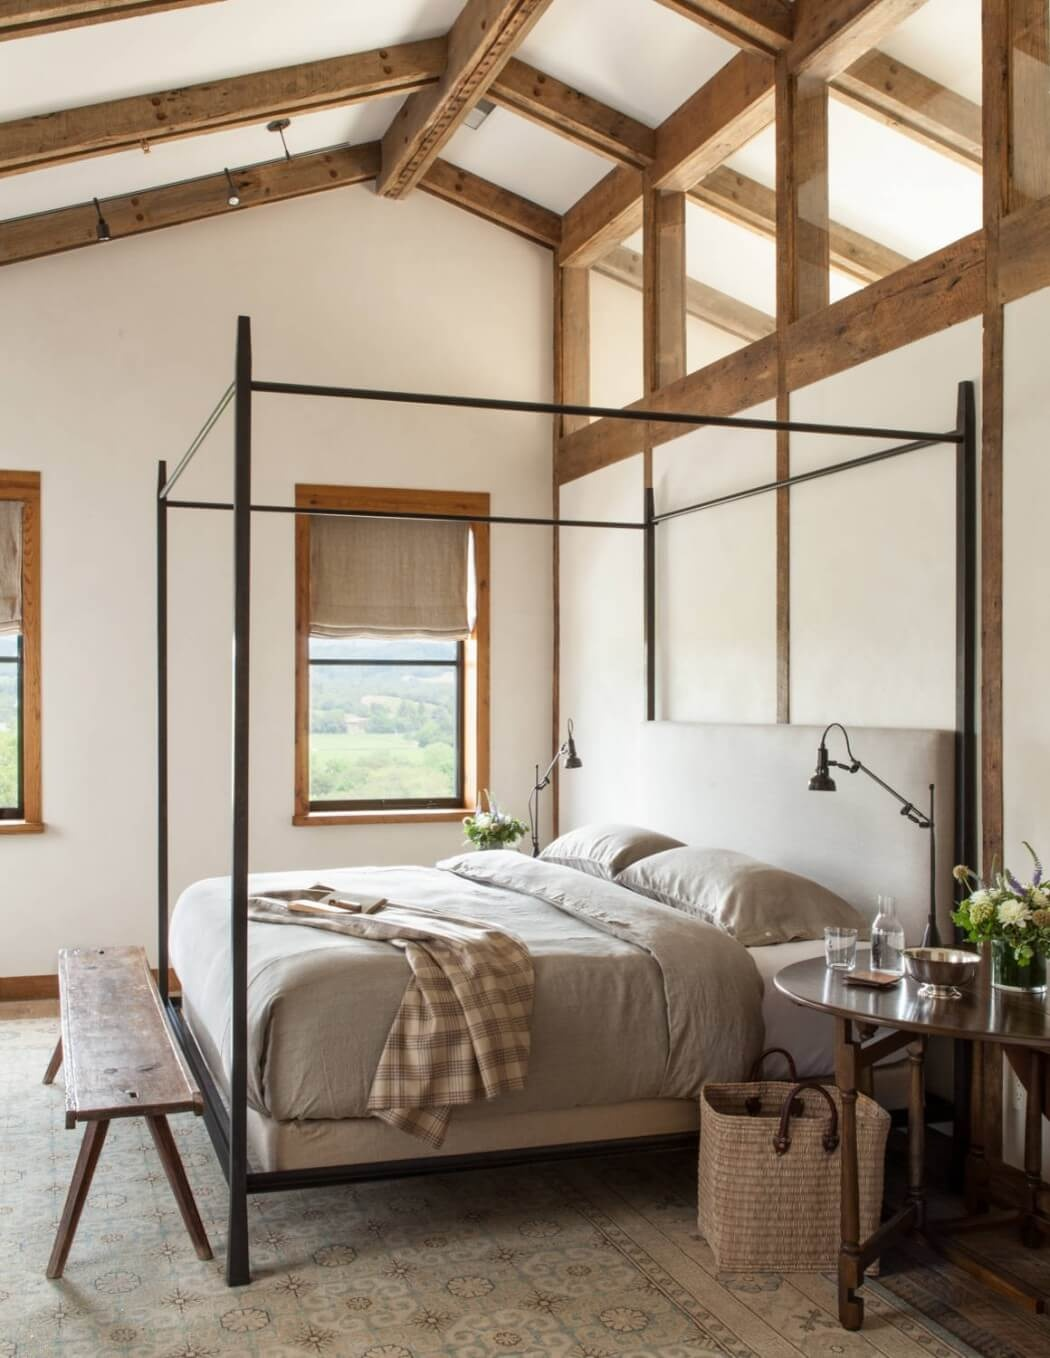 010-healdsburg-ranch-jute-interior-design-1050x1358_01